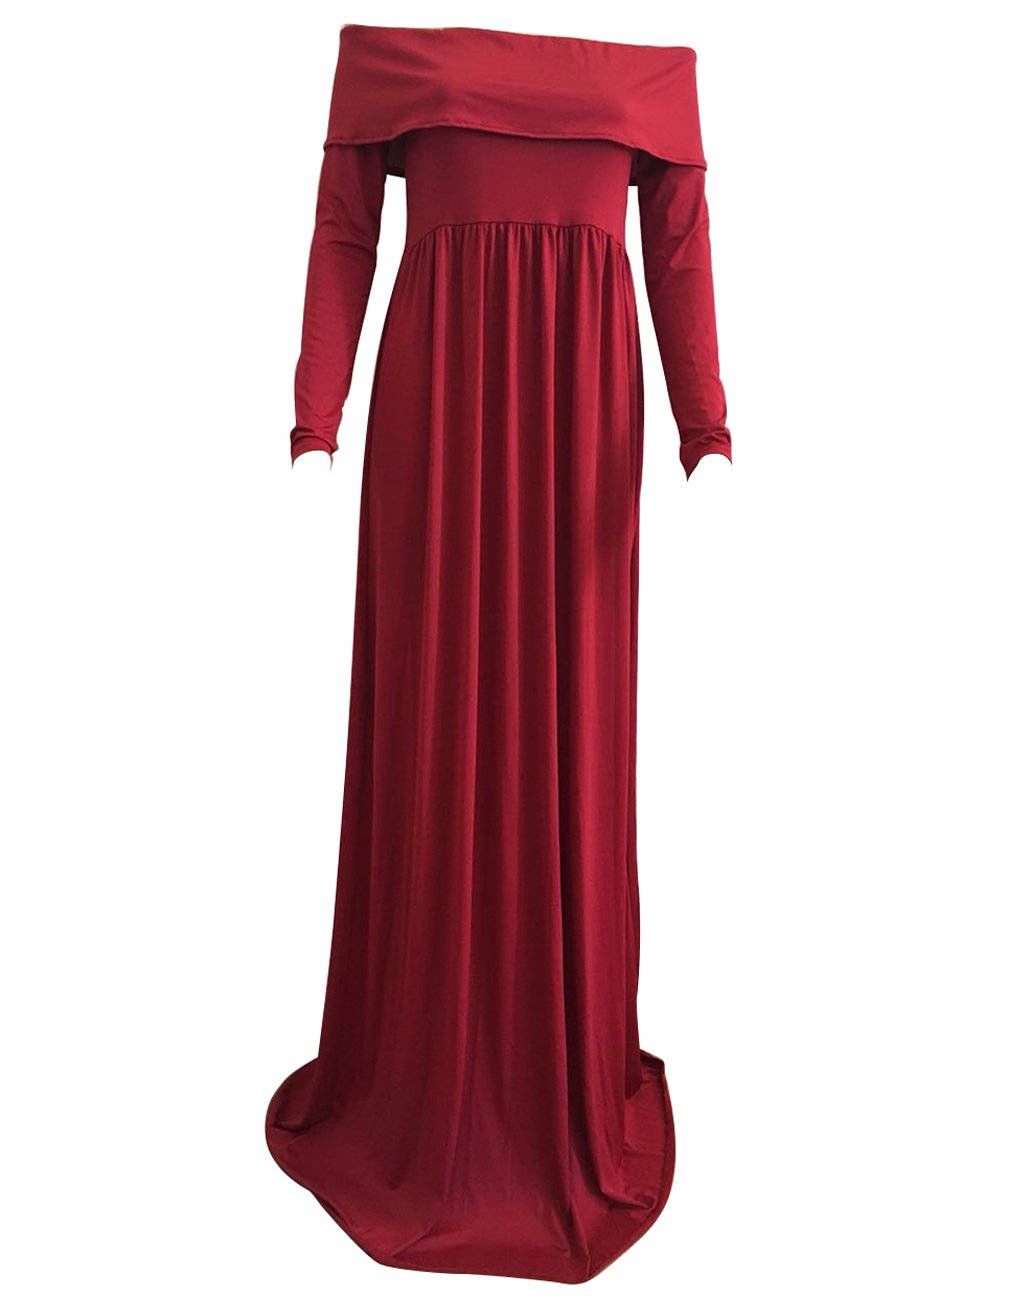 Babe Maps Cowl Neck and Over The Shoulder Maternity Long Sleeve Nursing Off Shoulder Dress for Photography,Red,Medium